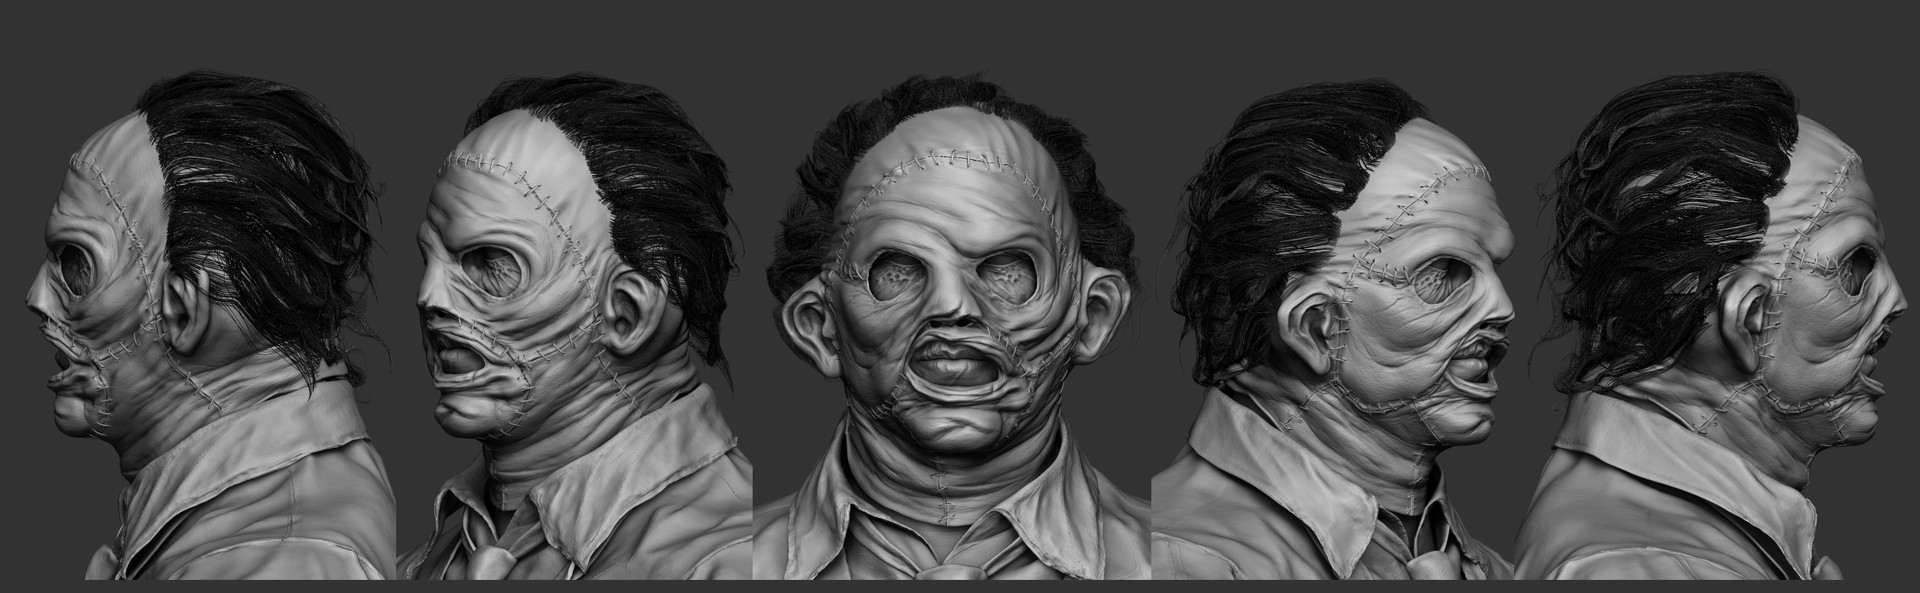 Solomon gaitan leatherface moviemask